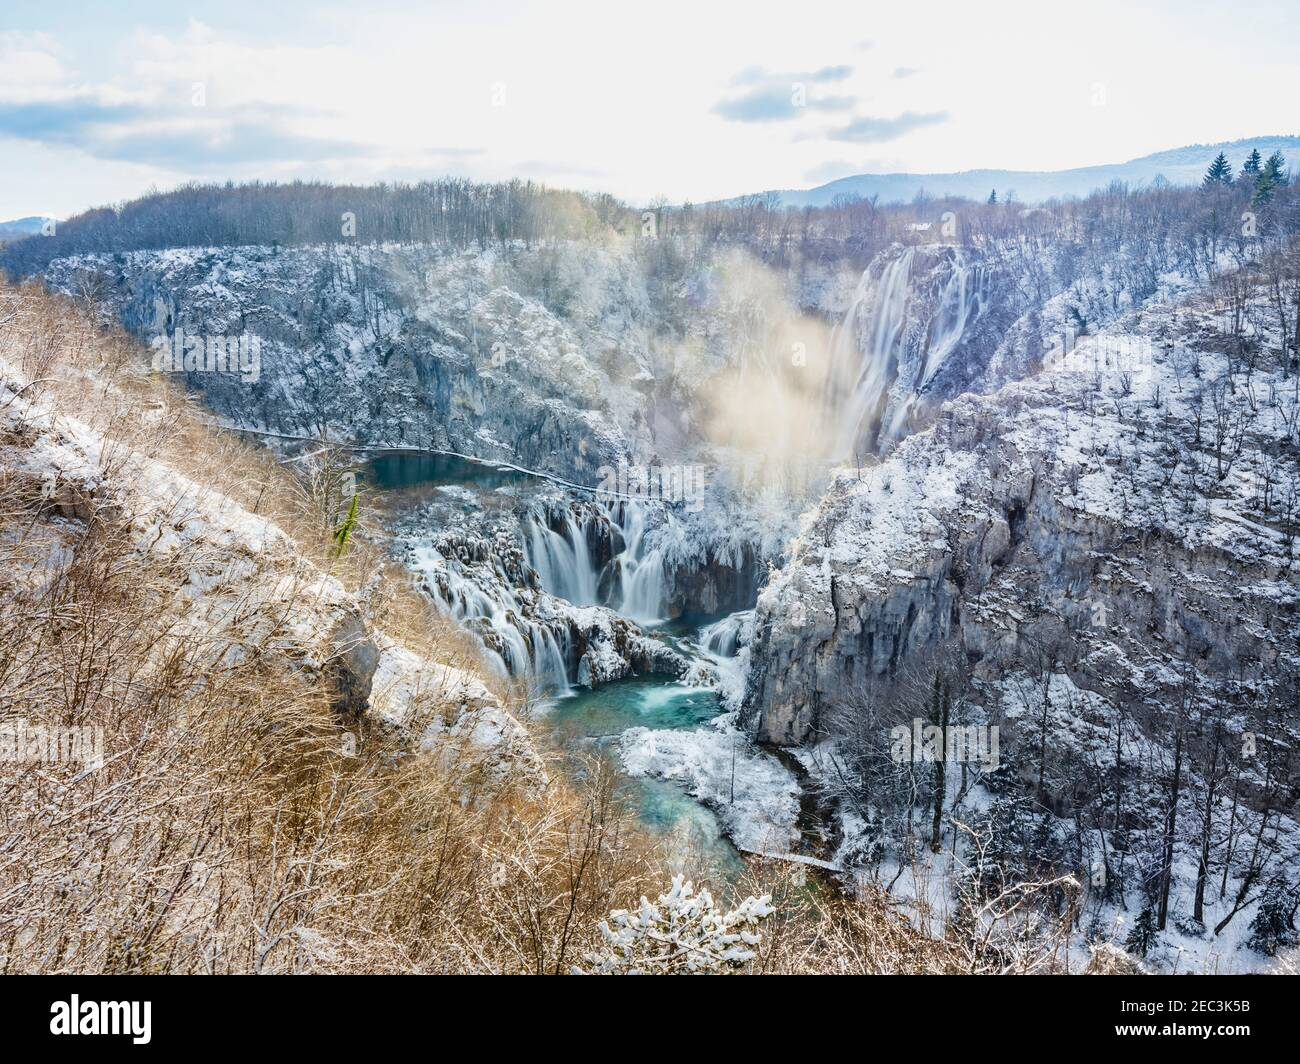 Daily fog before stunning Veliki slap Big waterfall in national park Plitvice lakes Croatia Europe Winter under covered cover snow ice waterflow water Stock Photo